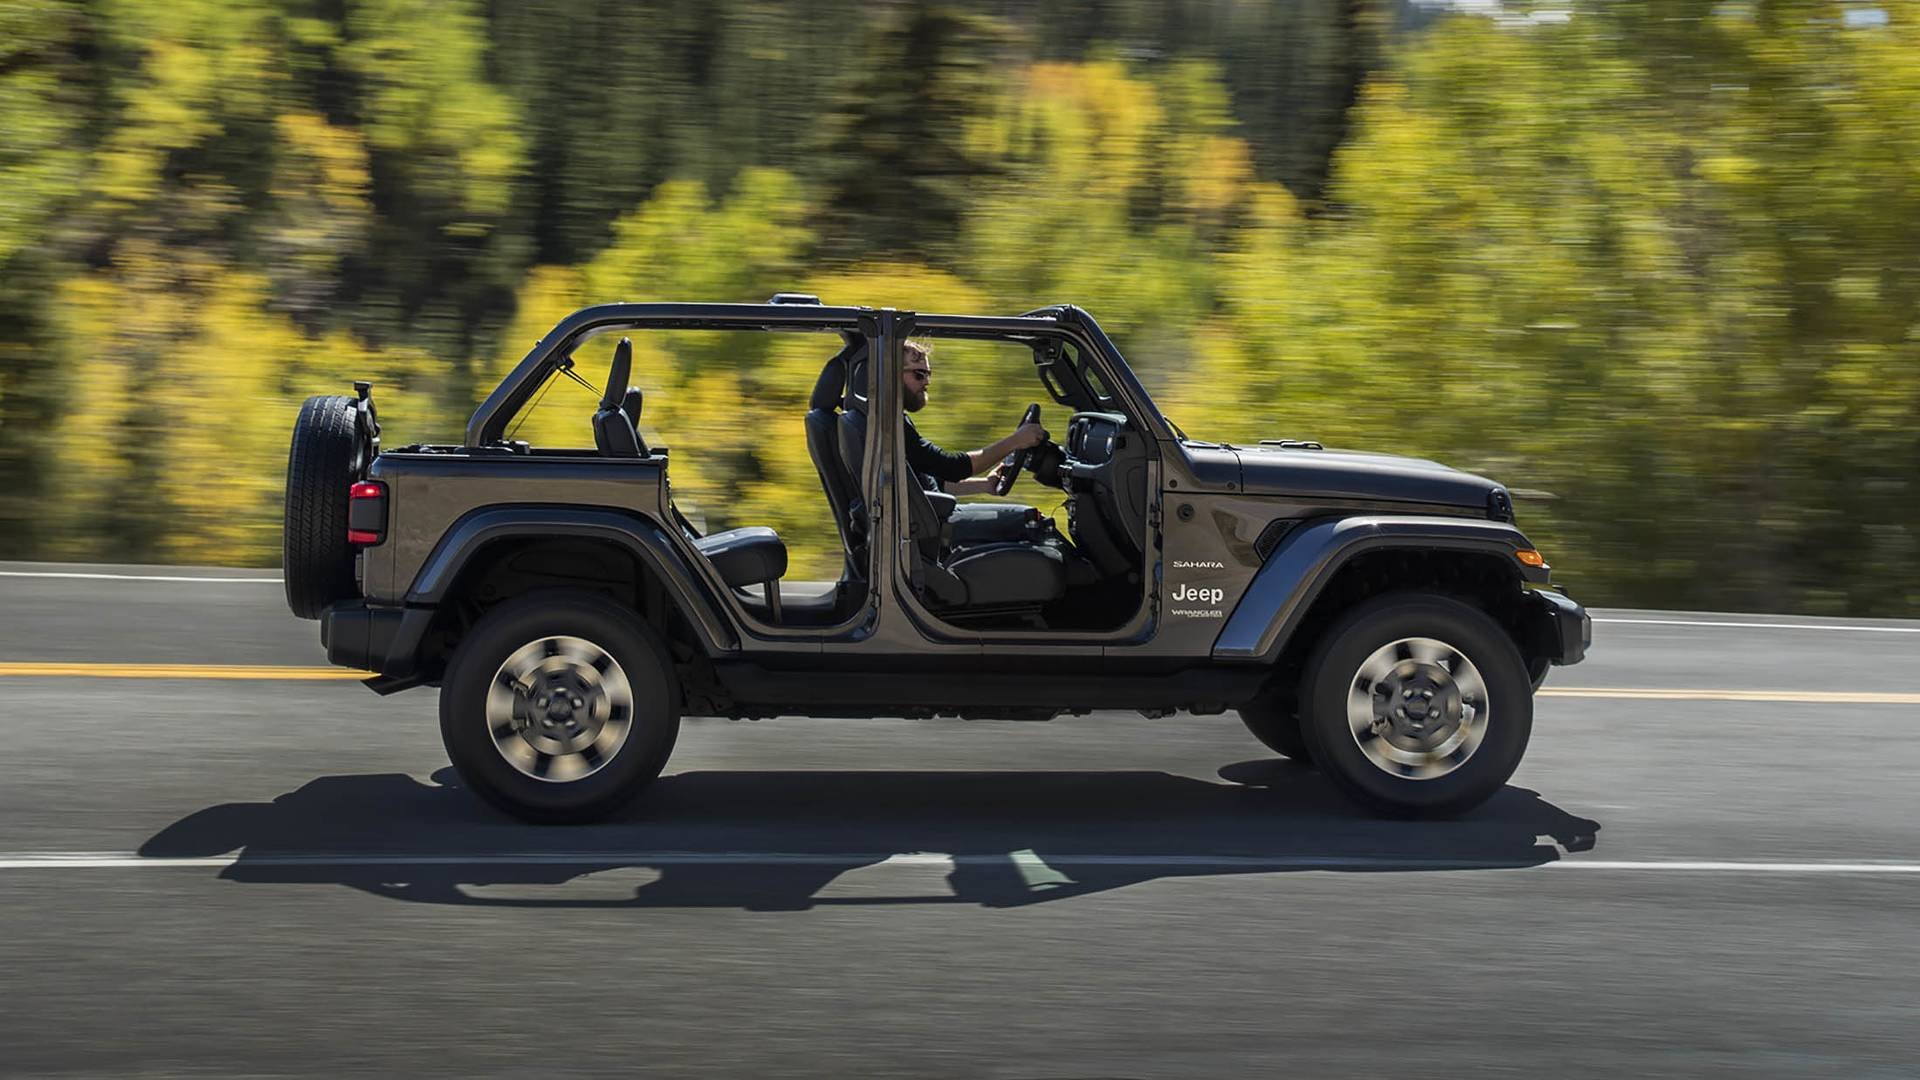 2014 Jeep Wrangler Rubicon By Rugged Ridge Wallpapers Straight Off The Path Autoevolution